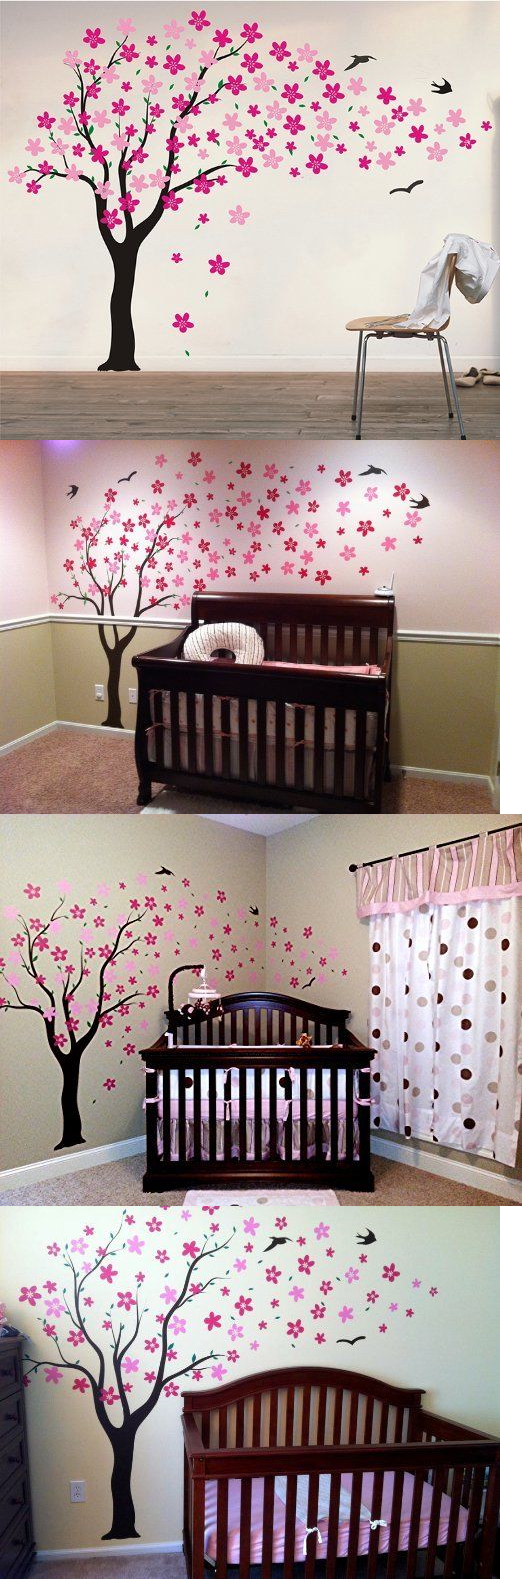 Master bedroom wall decor stickers  Kids at Home Wall Decals Nursery Room Decor Flowers Birds Tree Kids